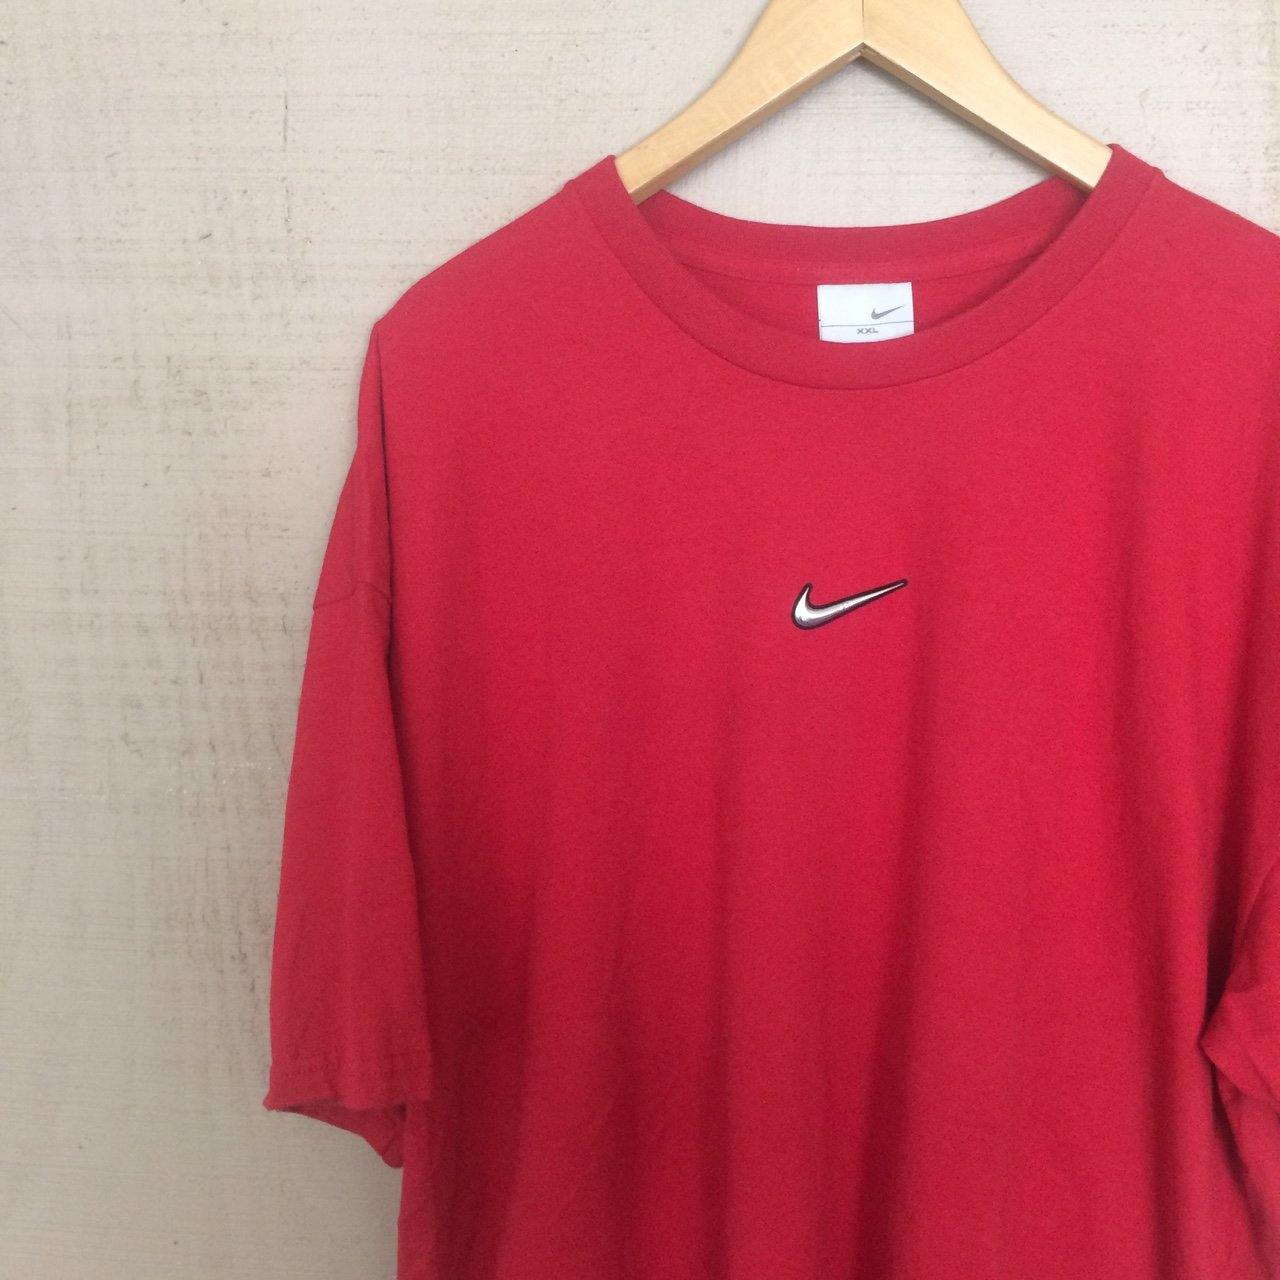 4a388cee4cf6 Mens Xxl Nike T Shirts – EDGE Engineering and Consulting Limited